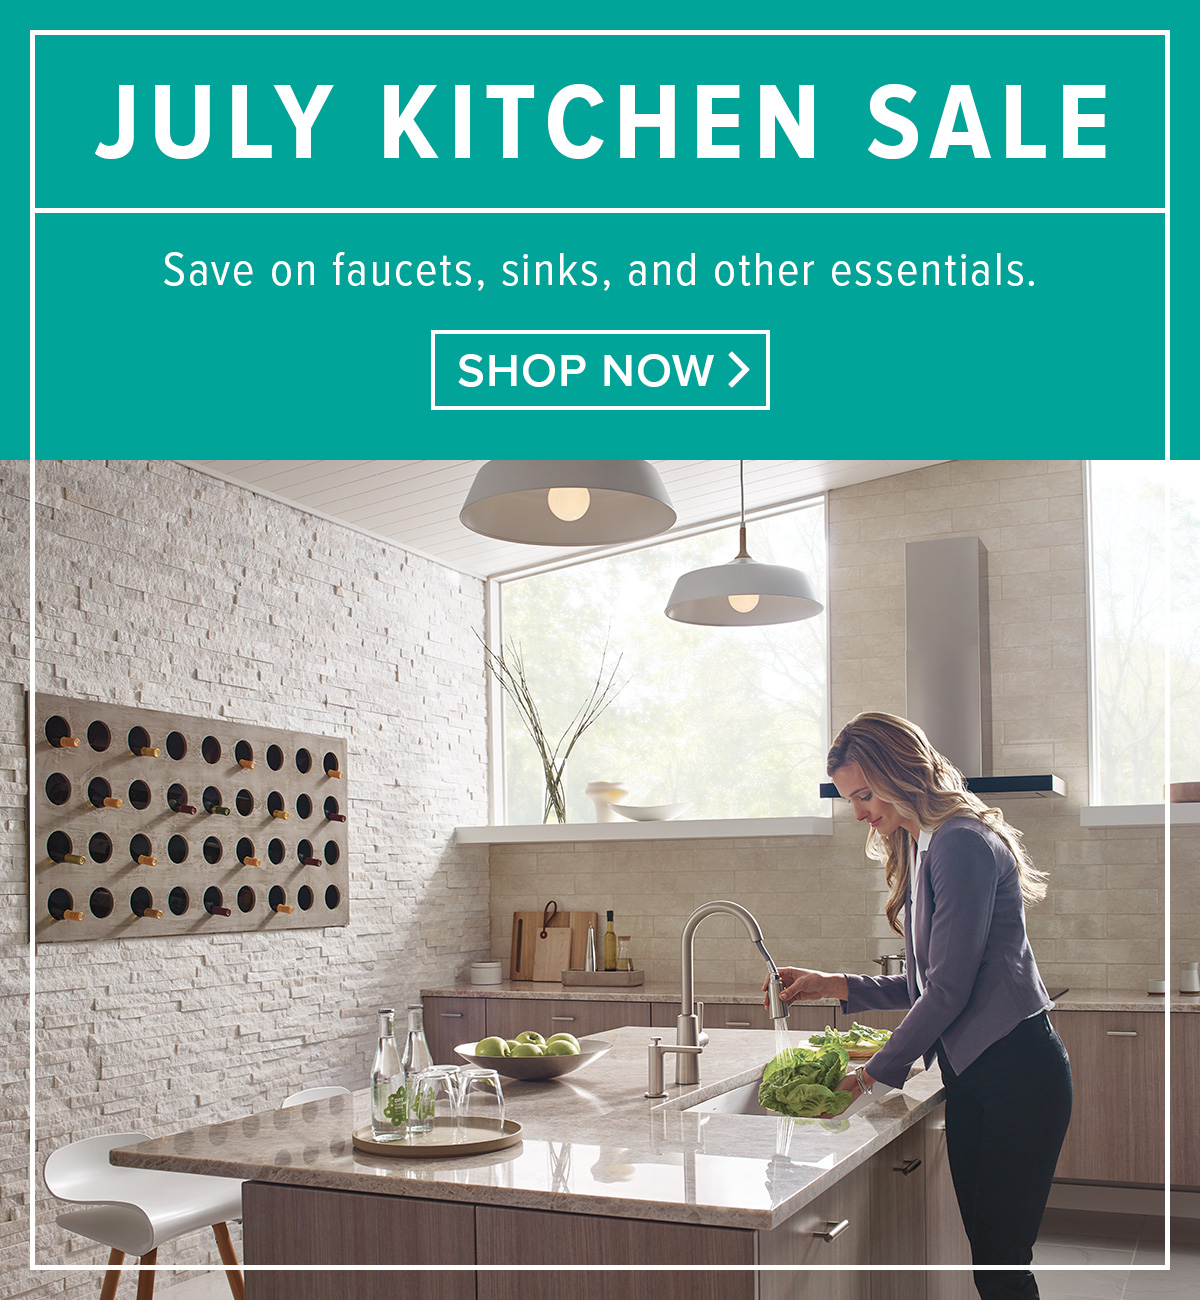 Build.com: Find the perfect pair. Kitchen faucets & sinks sale. | Milled